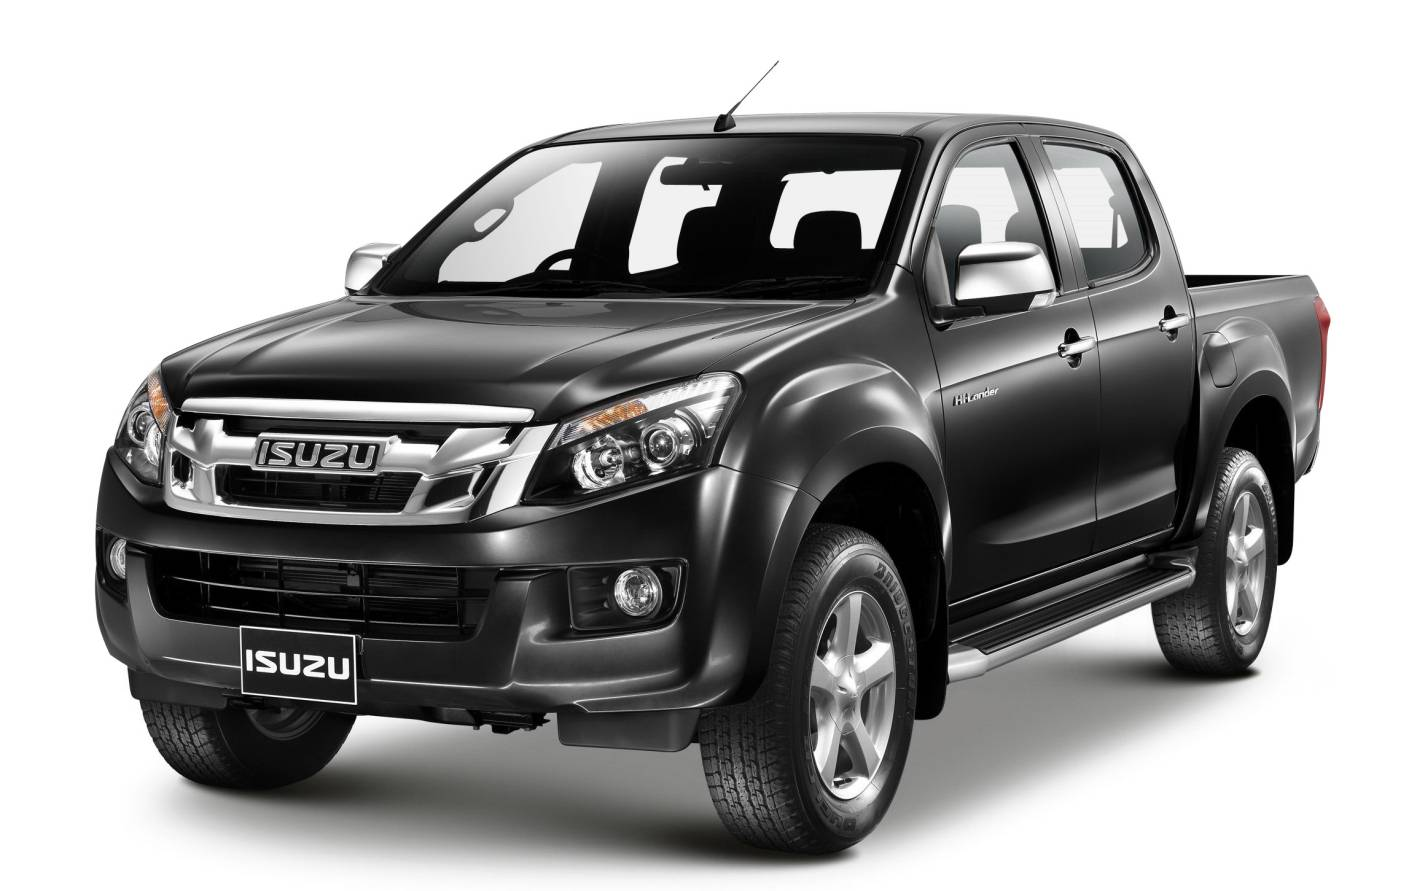 Isuzu D-Max Picks Up Another Fuel Efficiency Award